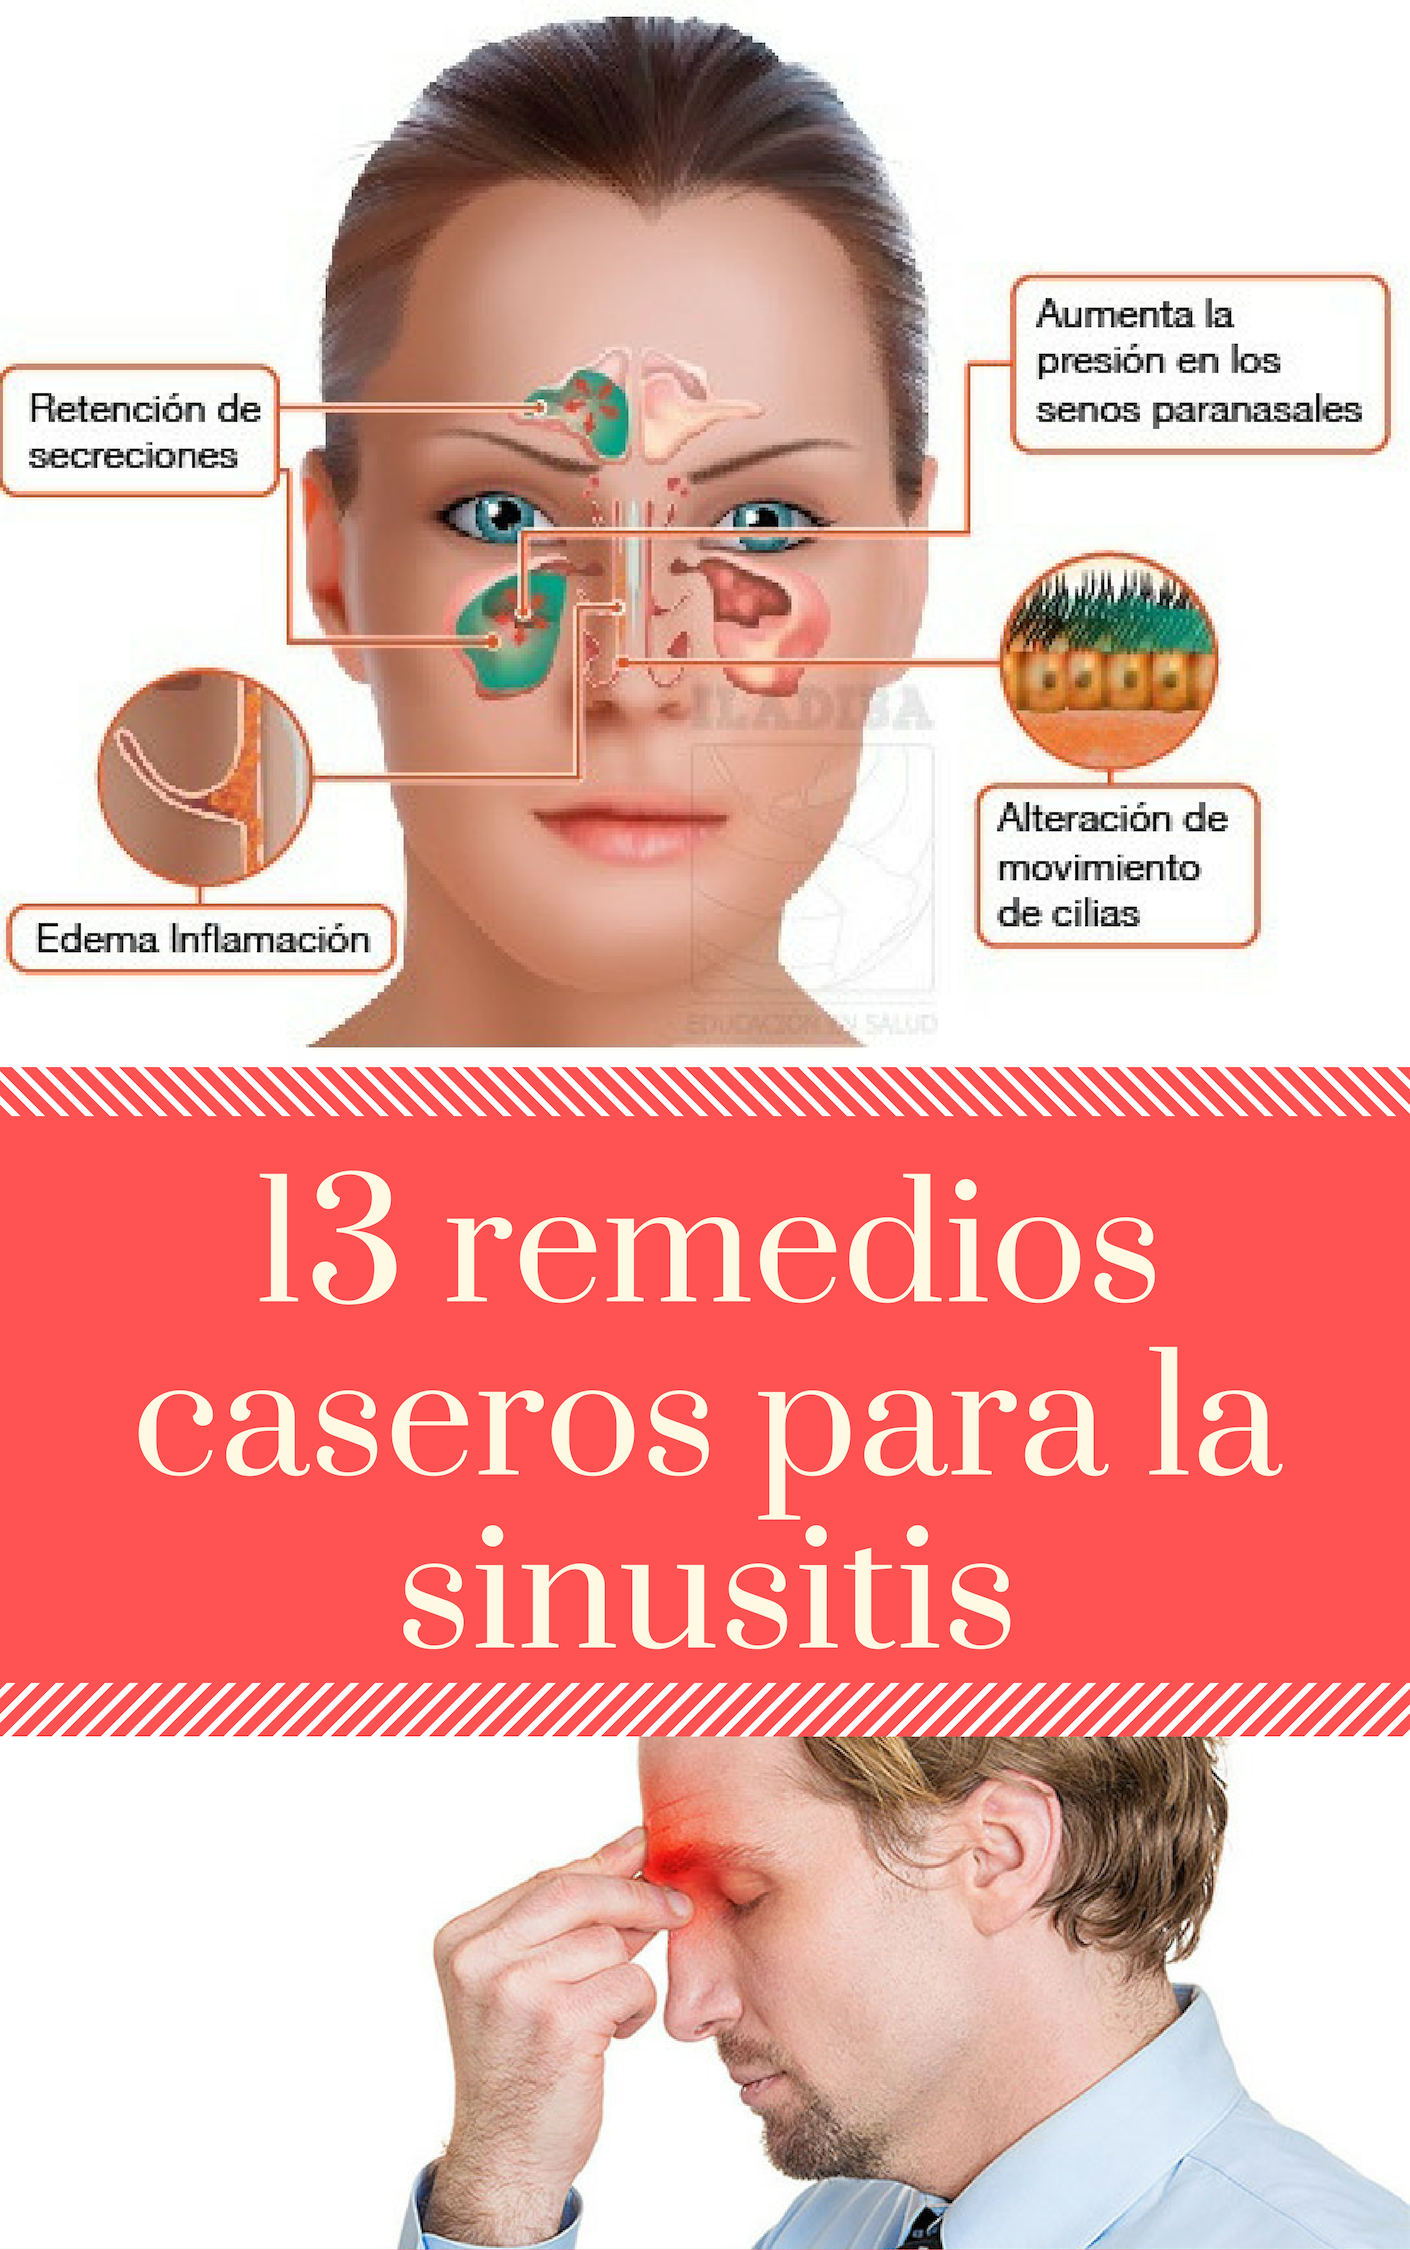 13 Remedios Caseros Para La Sinusitis Tips Life Vida Salud Remedios Tips4lives Diy Bienestar Daily Health Tips Good Health Tips Cancer Prevention